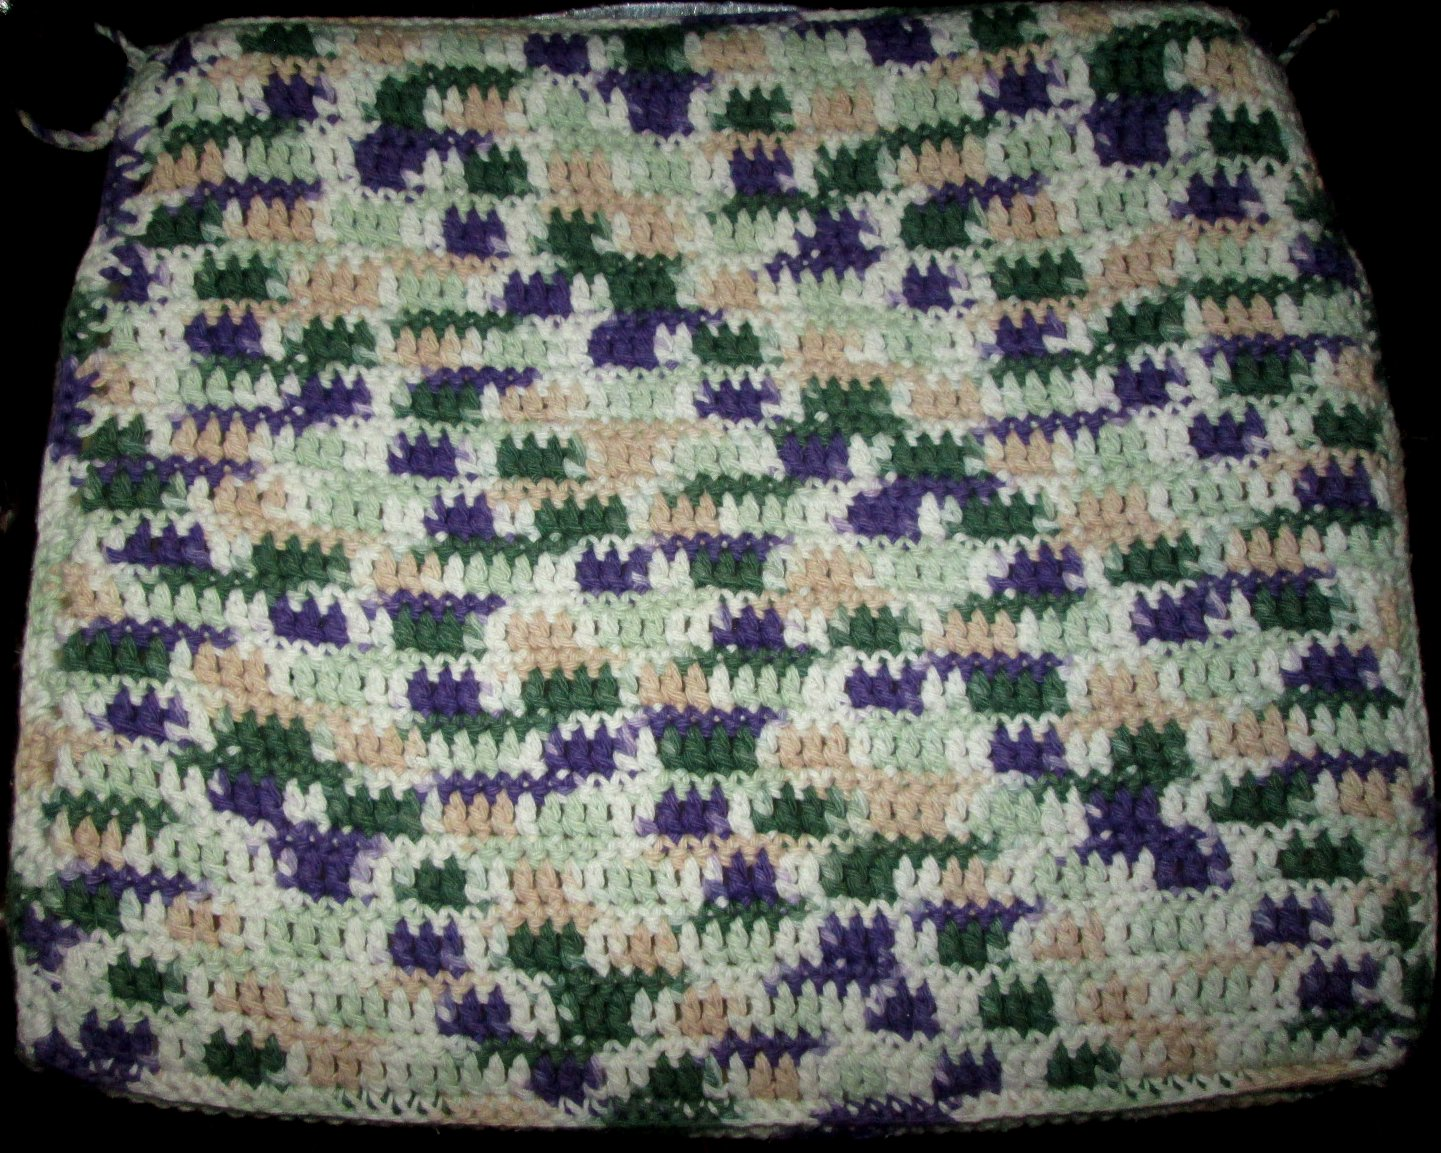 Crochet Baby Blanket Patterns Variegated Yarn : variegated yarn Lemon Balm